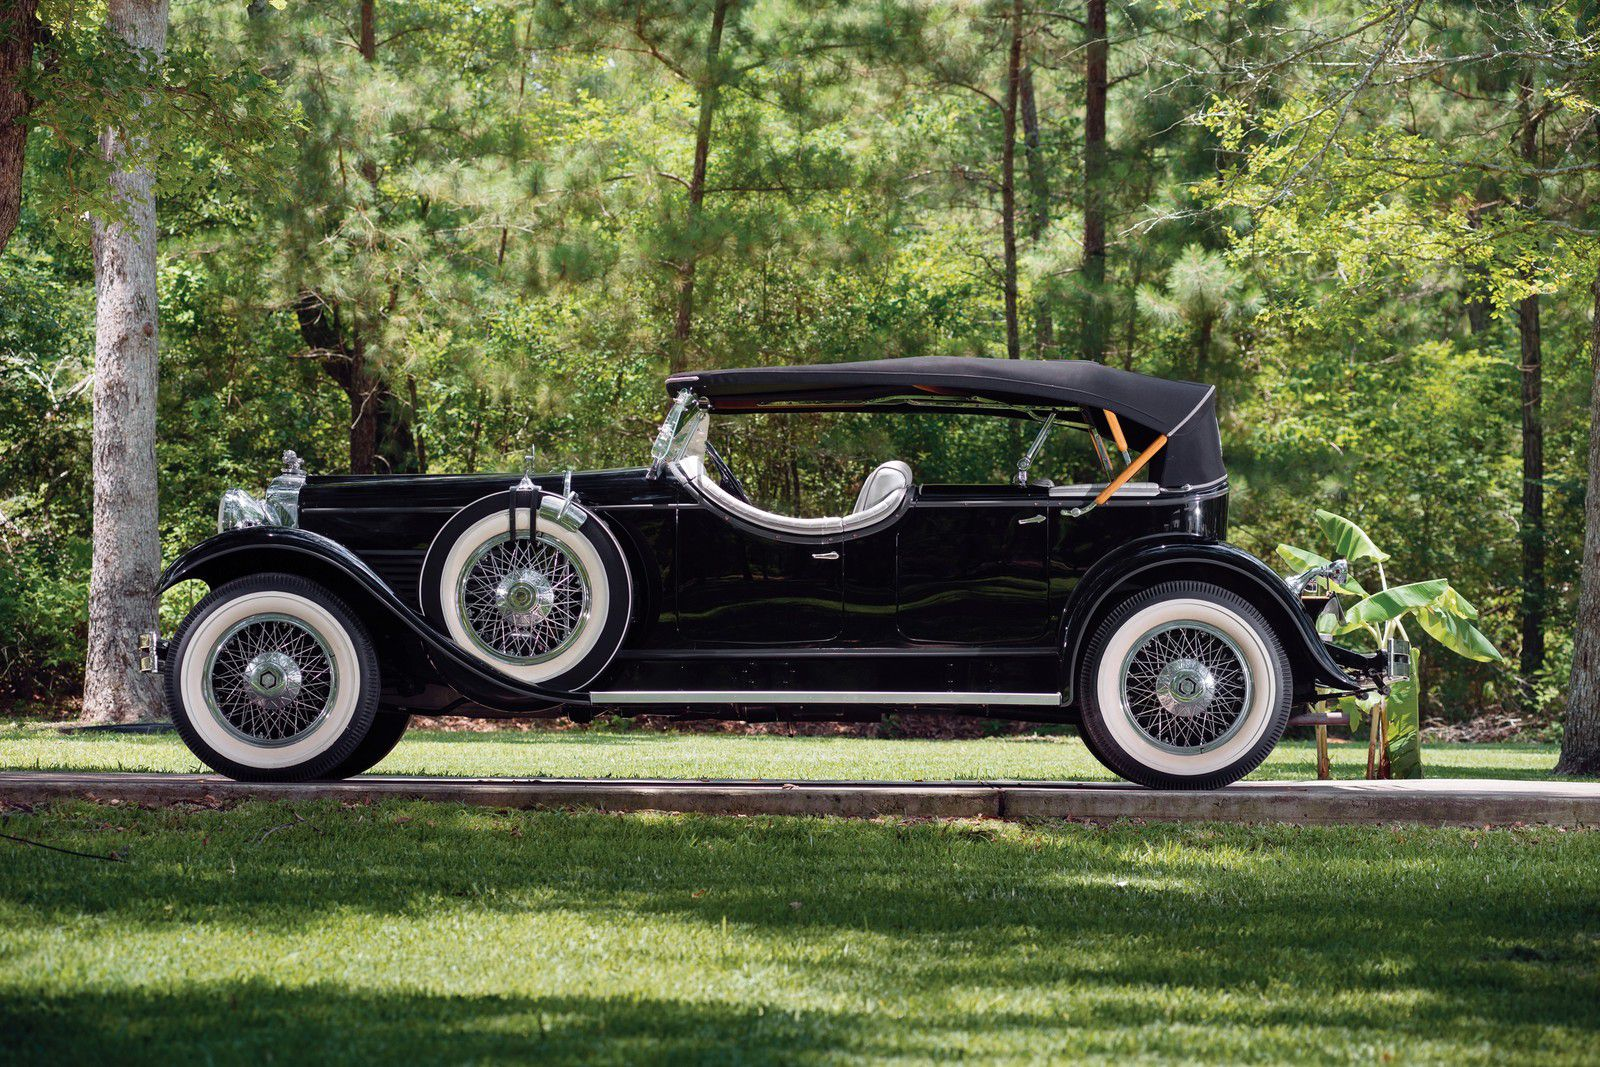 VOITURES DE LEGENDE (1162) : STUTZ MODEL M FOUR PASSENGER LeBARON SPEEDSTER - 1929